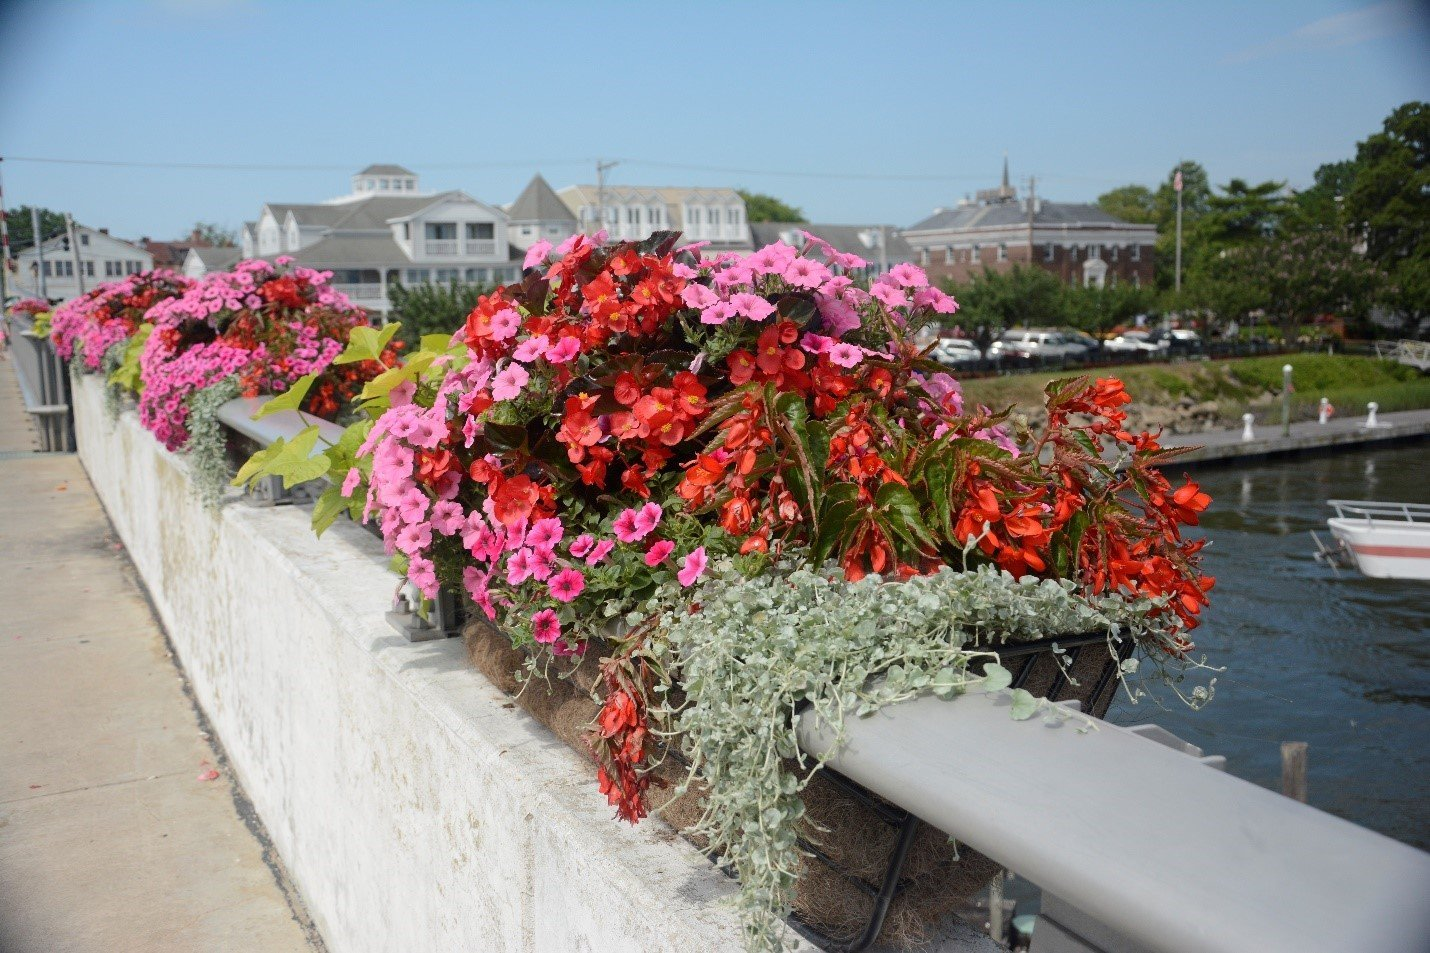 Lewes Community Profile In Bloom How To Build Plant Watering Watcher Circuit Schematic Planters On Drawbridge Over Canal